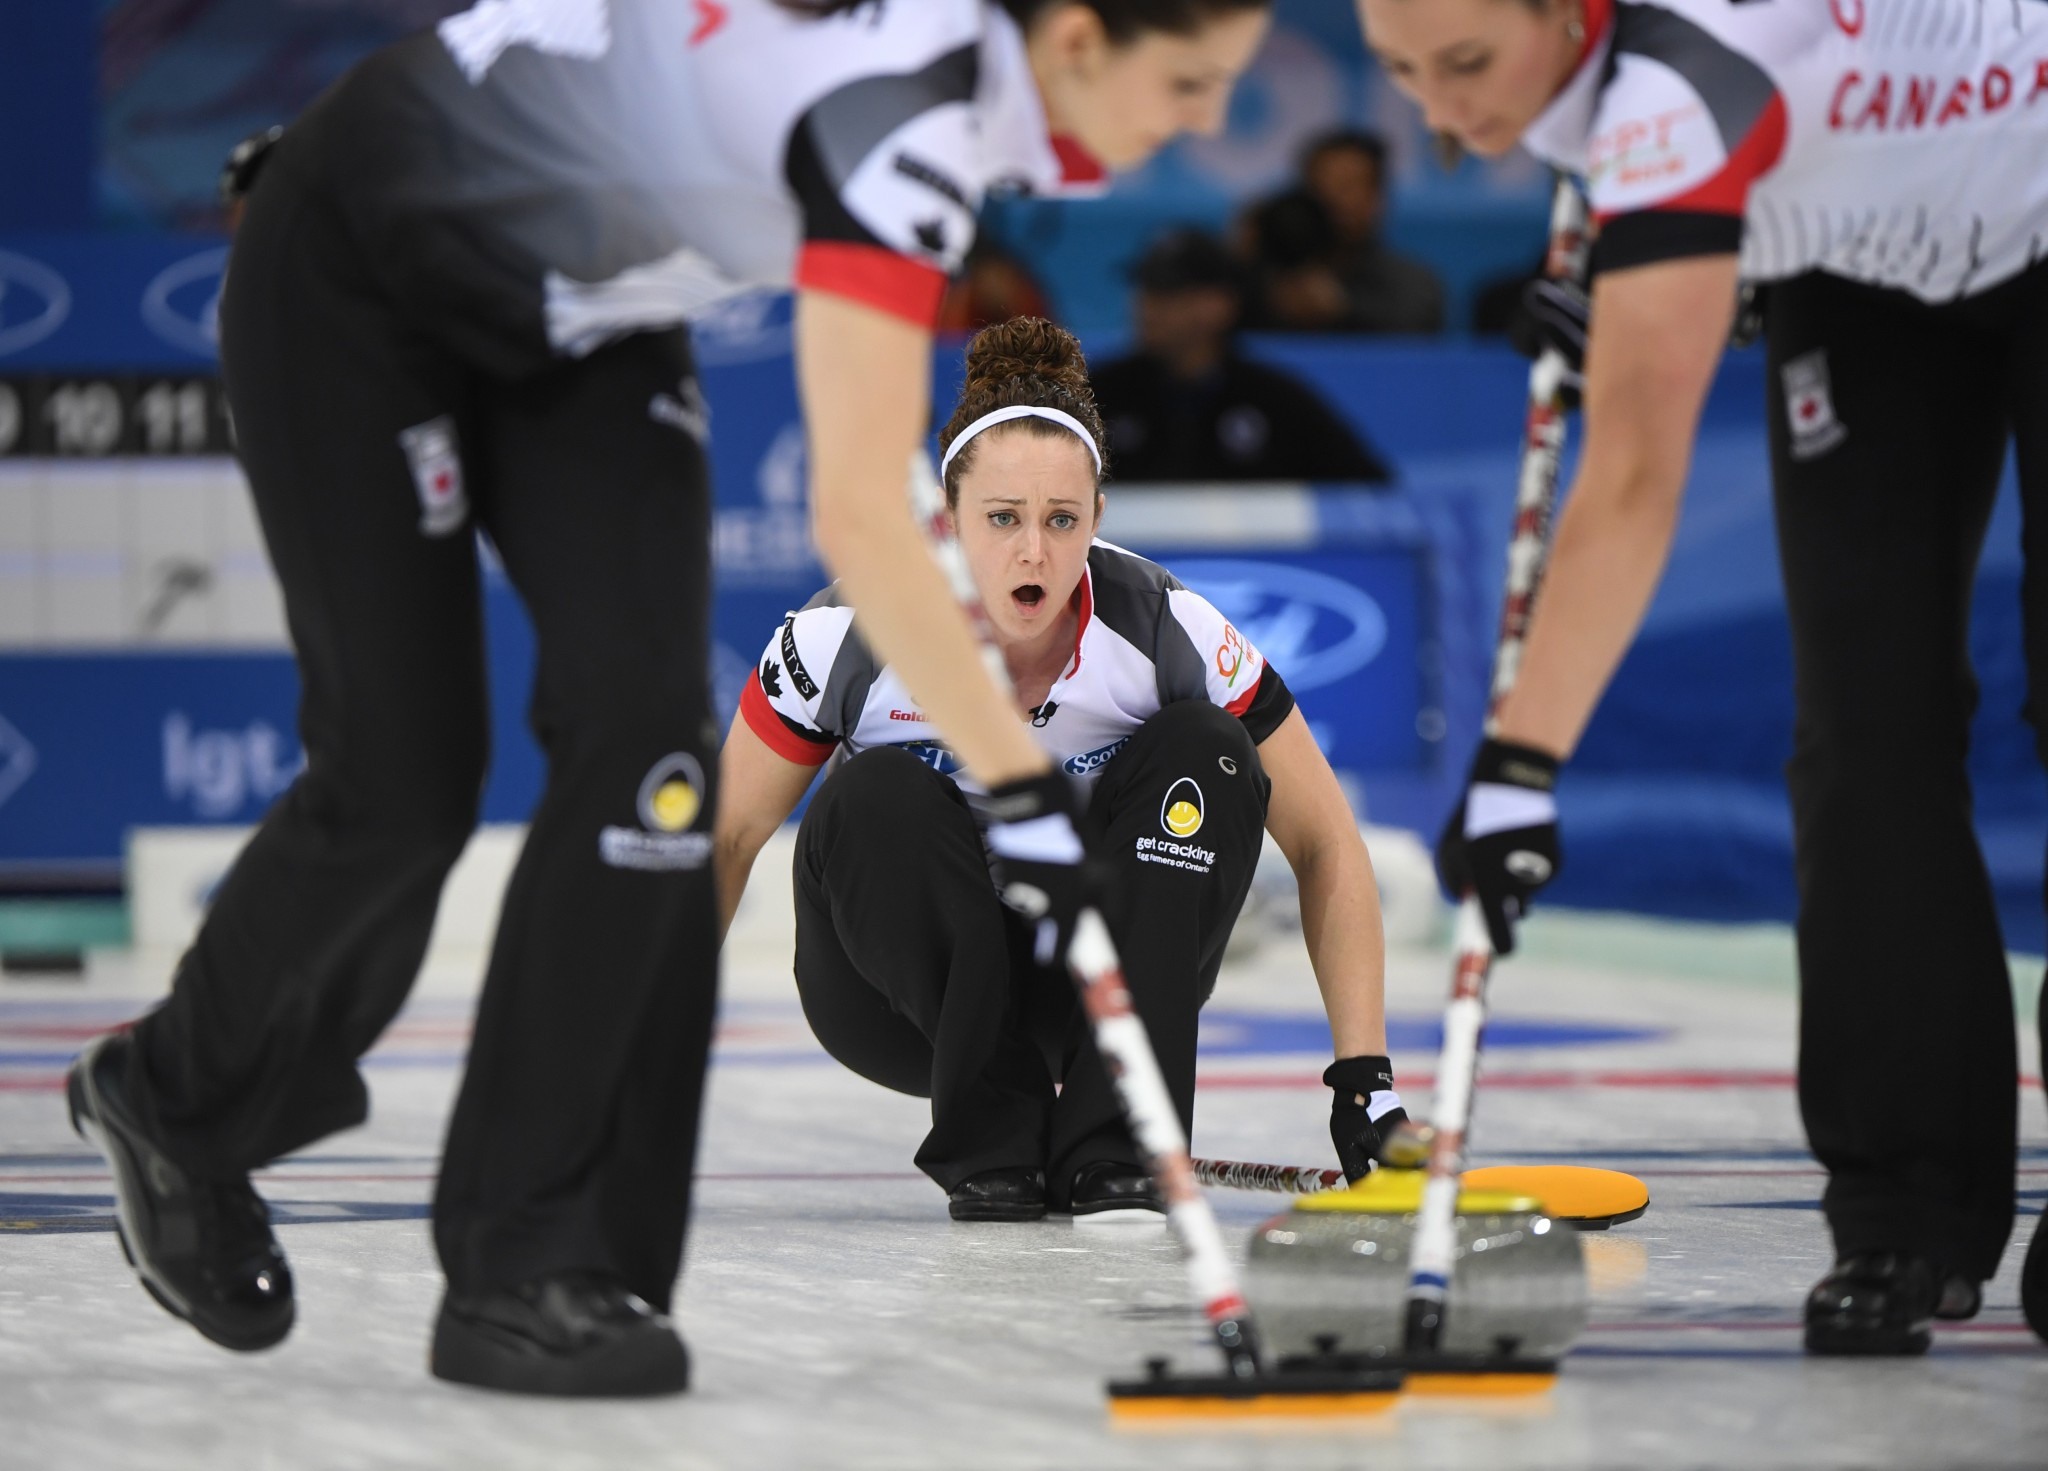 The World Curling Federation has extended its deal with Curling Canada ©WCF